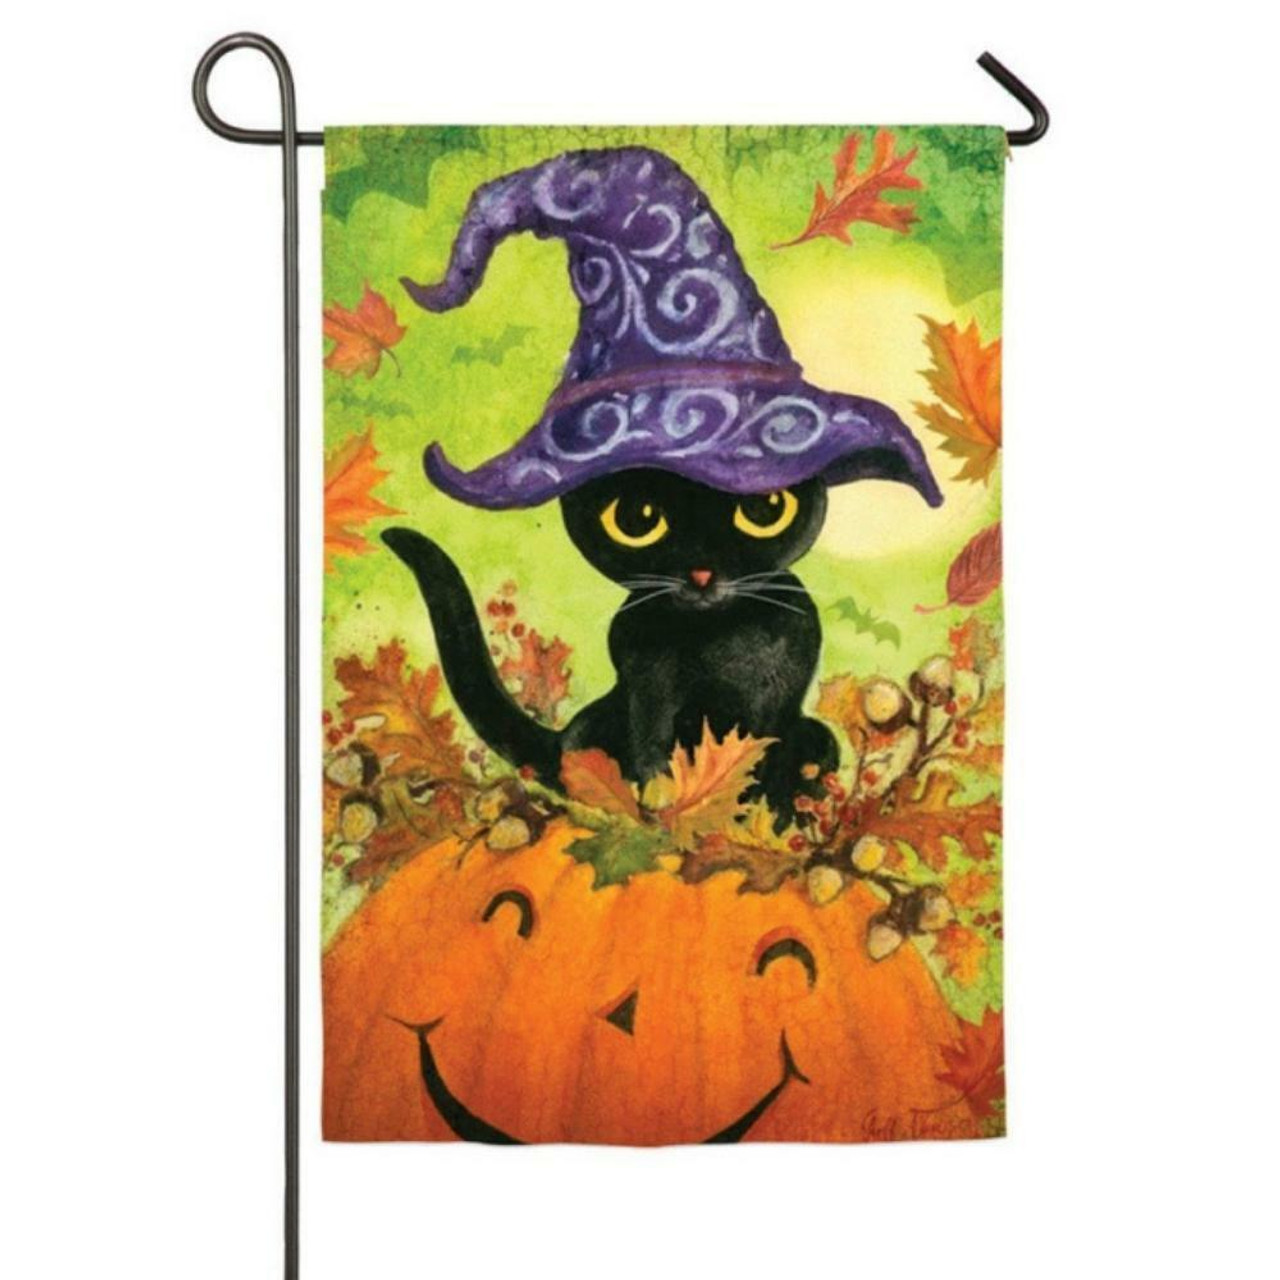 There is a black cat with a black witch's had perched on a bright orange pumpkin with a broad smile.